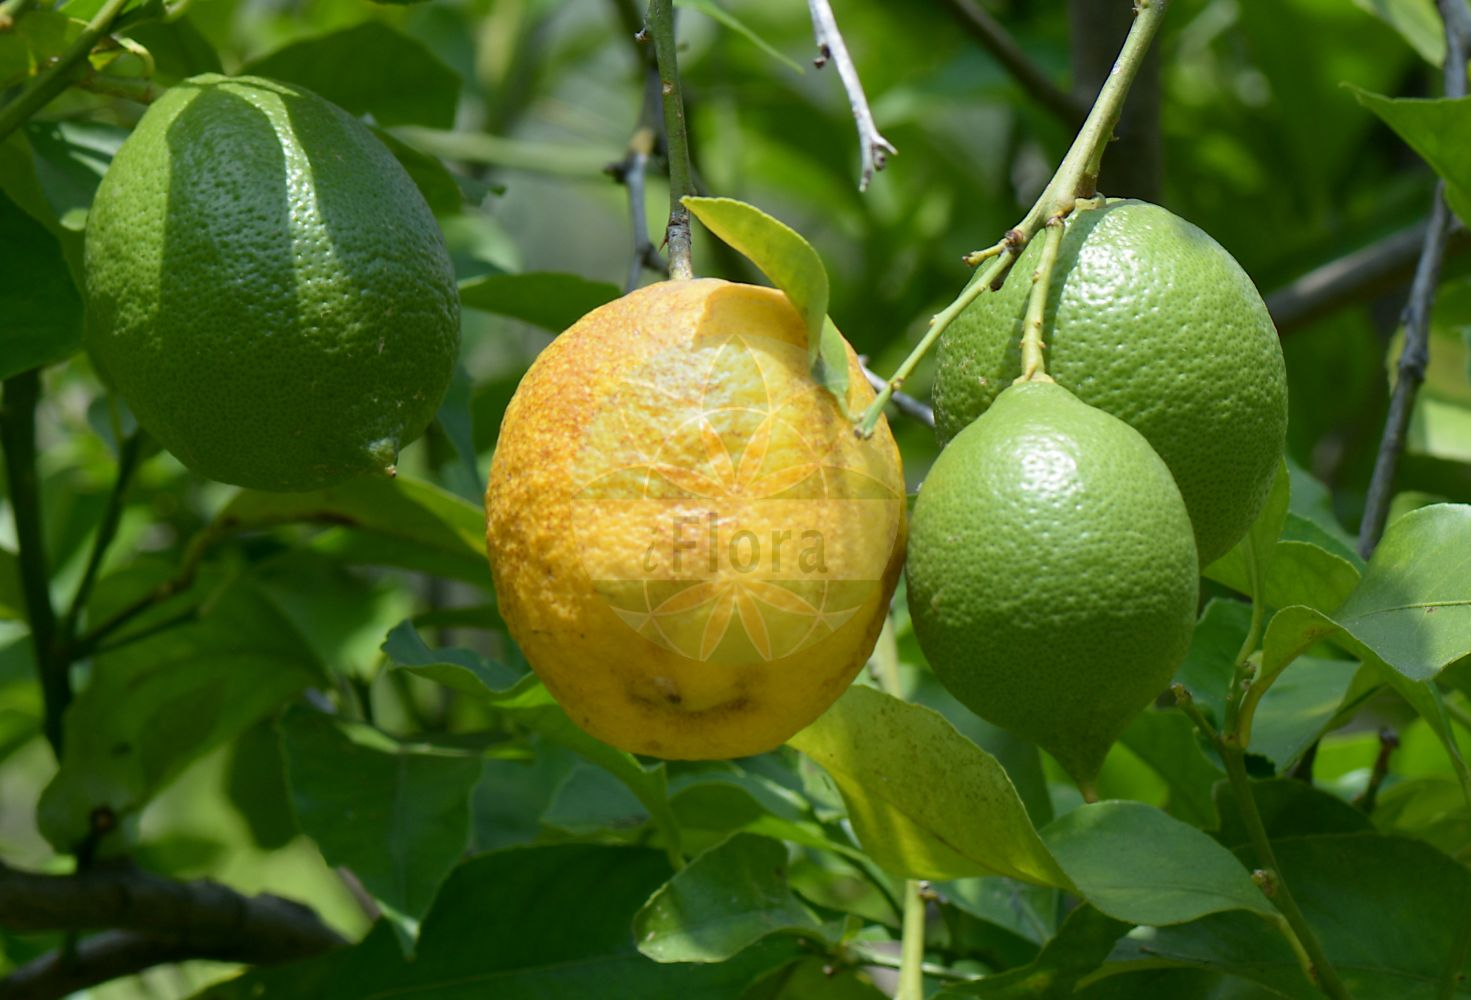 Foto von Citrus limon. Das Bild zeigt Blatt und Frucht. Das Foto wurde in Napoli, Campania, Italien aufgenommen. ---- Photo of Citrus limon.The image is showing leaf and fruit.The picture was taken in Napoli, Campania, Italy.(Citrus limon,Citrus,Rutaceae,Rautengewaechse,Rue family,Blatt,Frucht,leaf,fruit)